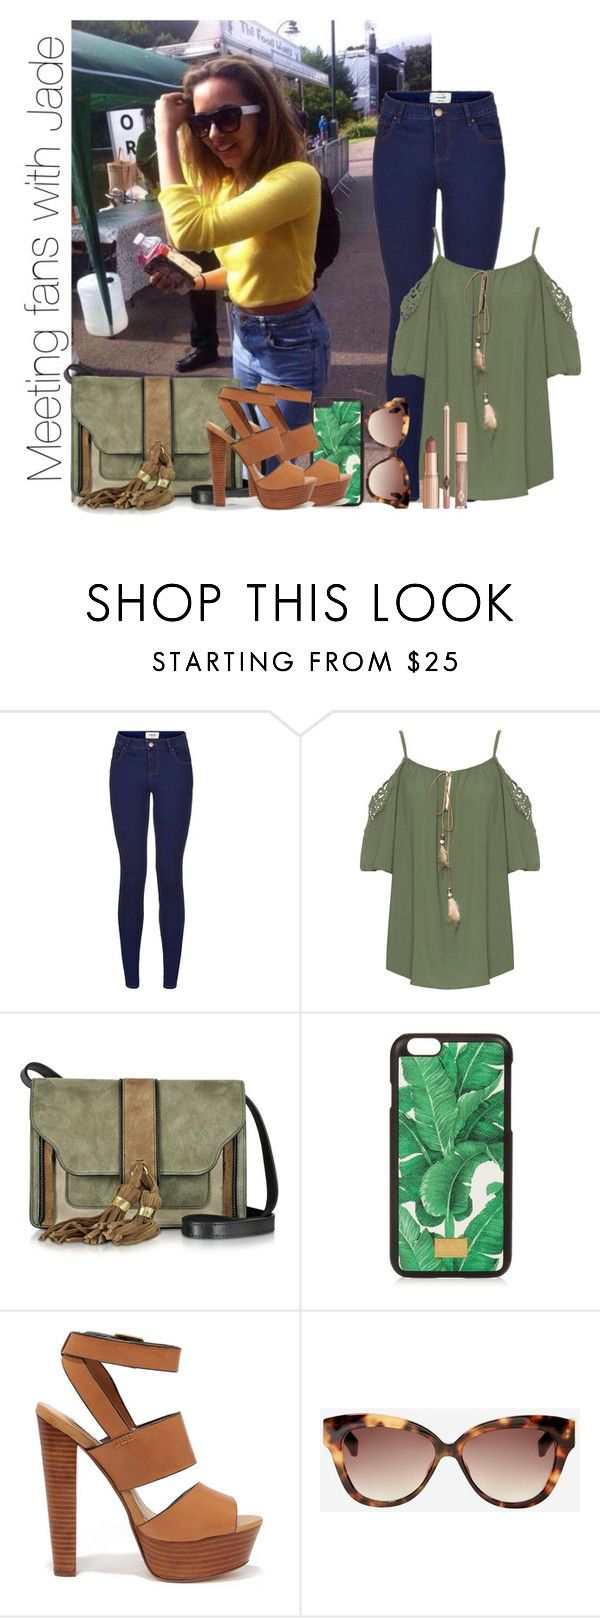 """""""Meeting fans with Jade"""" by little-black-princess ❤ liked on Polyvore featuring New Look, WearAll, L'Autre Chose, Dolce&Gabbana, Steve Madden and Linda Farrow"""